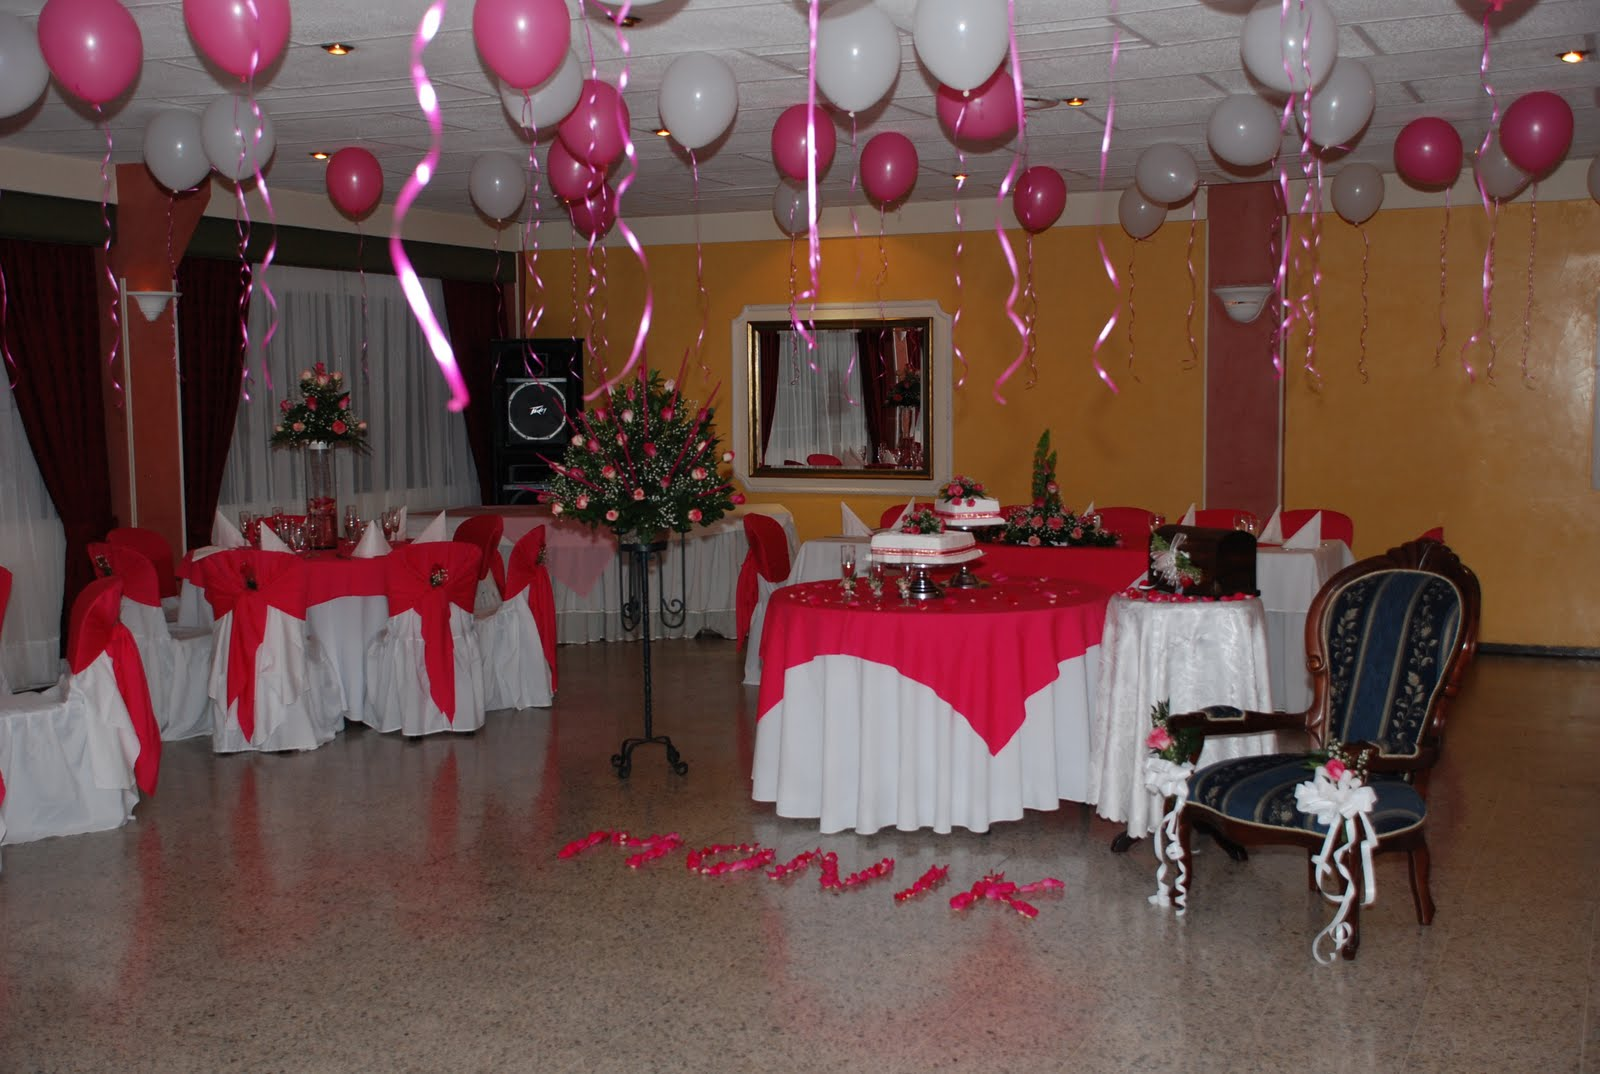 Decoracion Quince A?os ~ 15 Anos Decoracion Cake Ideas and Designs